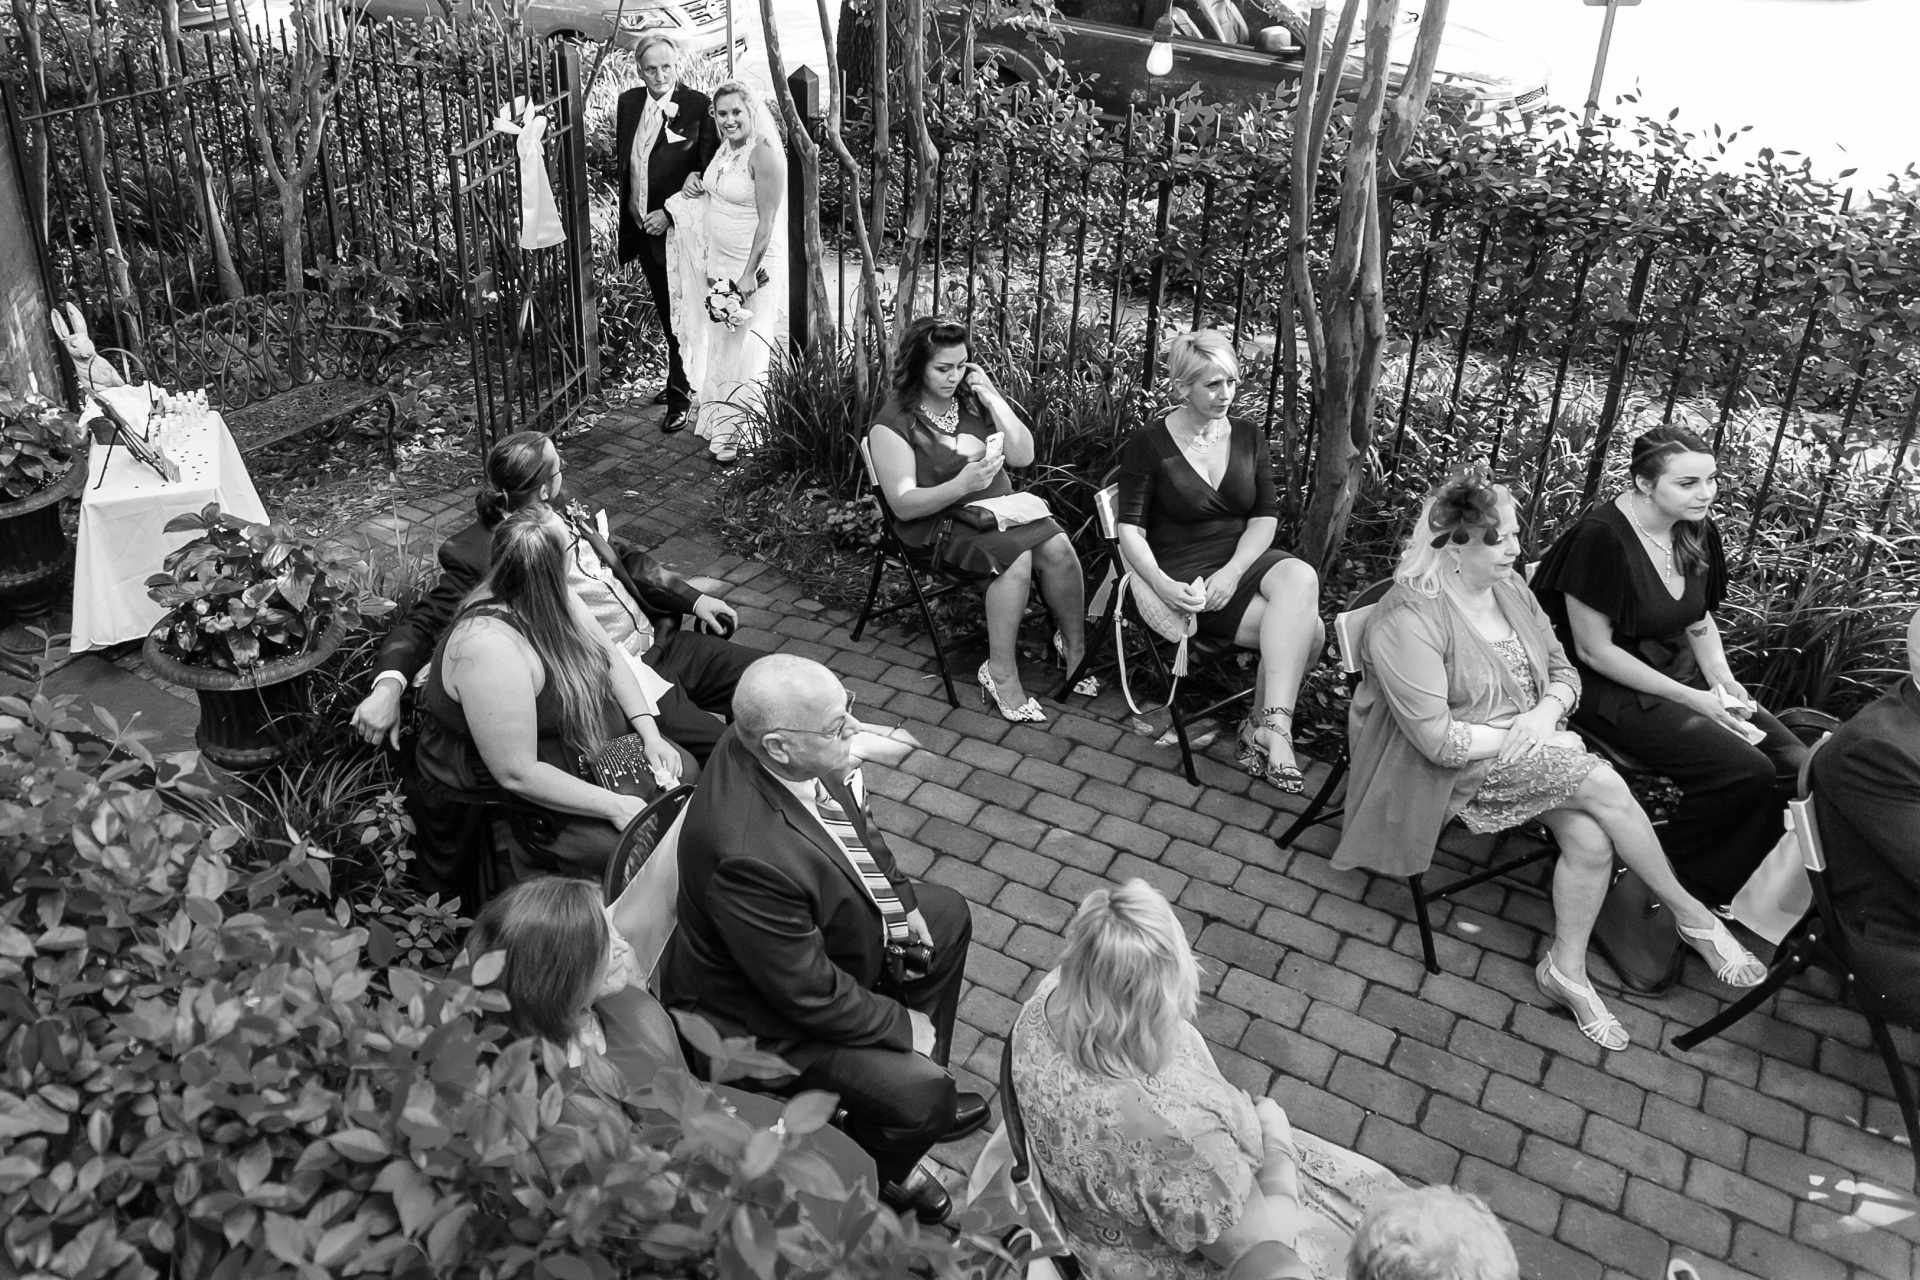 Kehoe House Wedding Image from Savannah | Dad escorts her to the garden courtyard